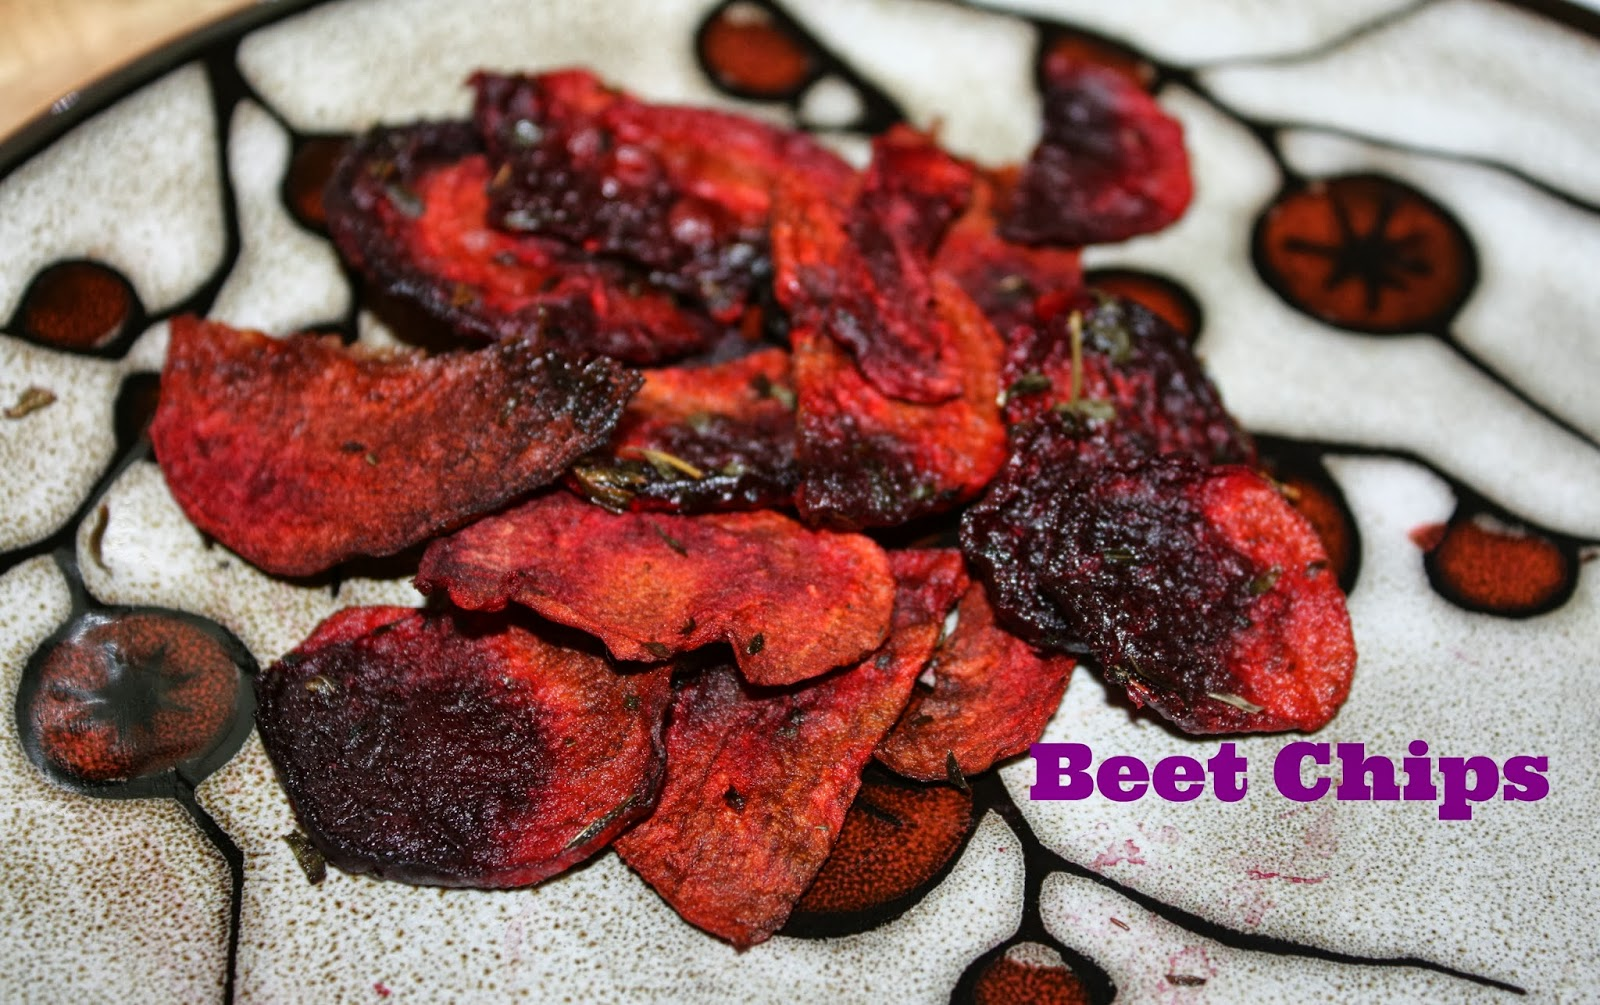 Little Time and a Keyboard: Yummy Beet Chips! {Recipe}